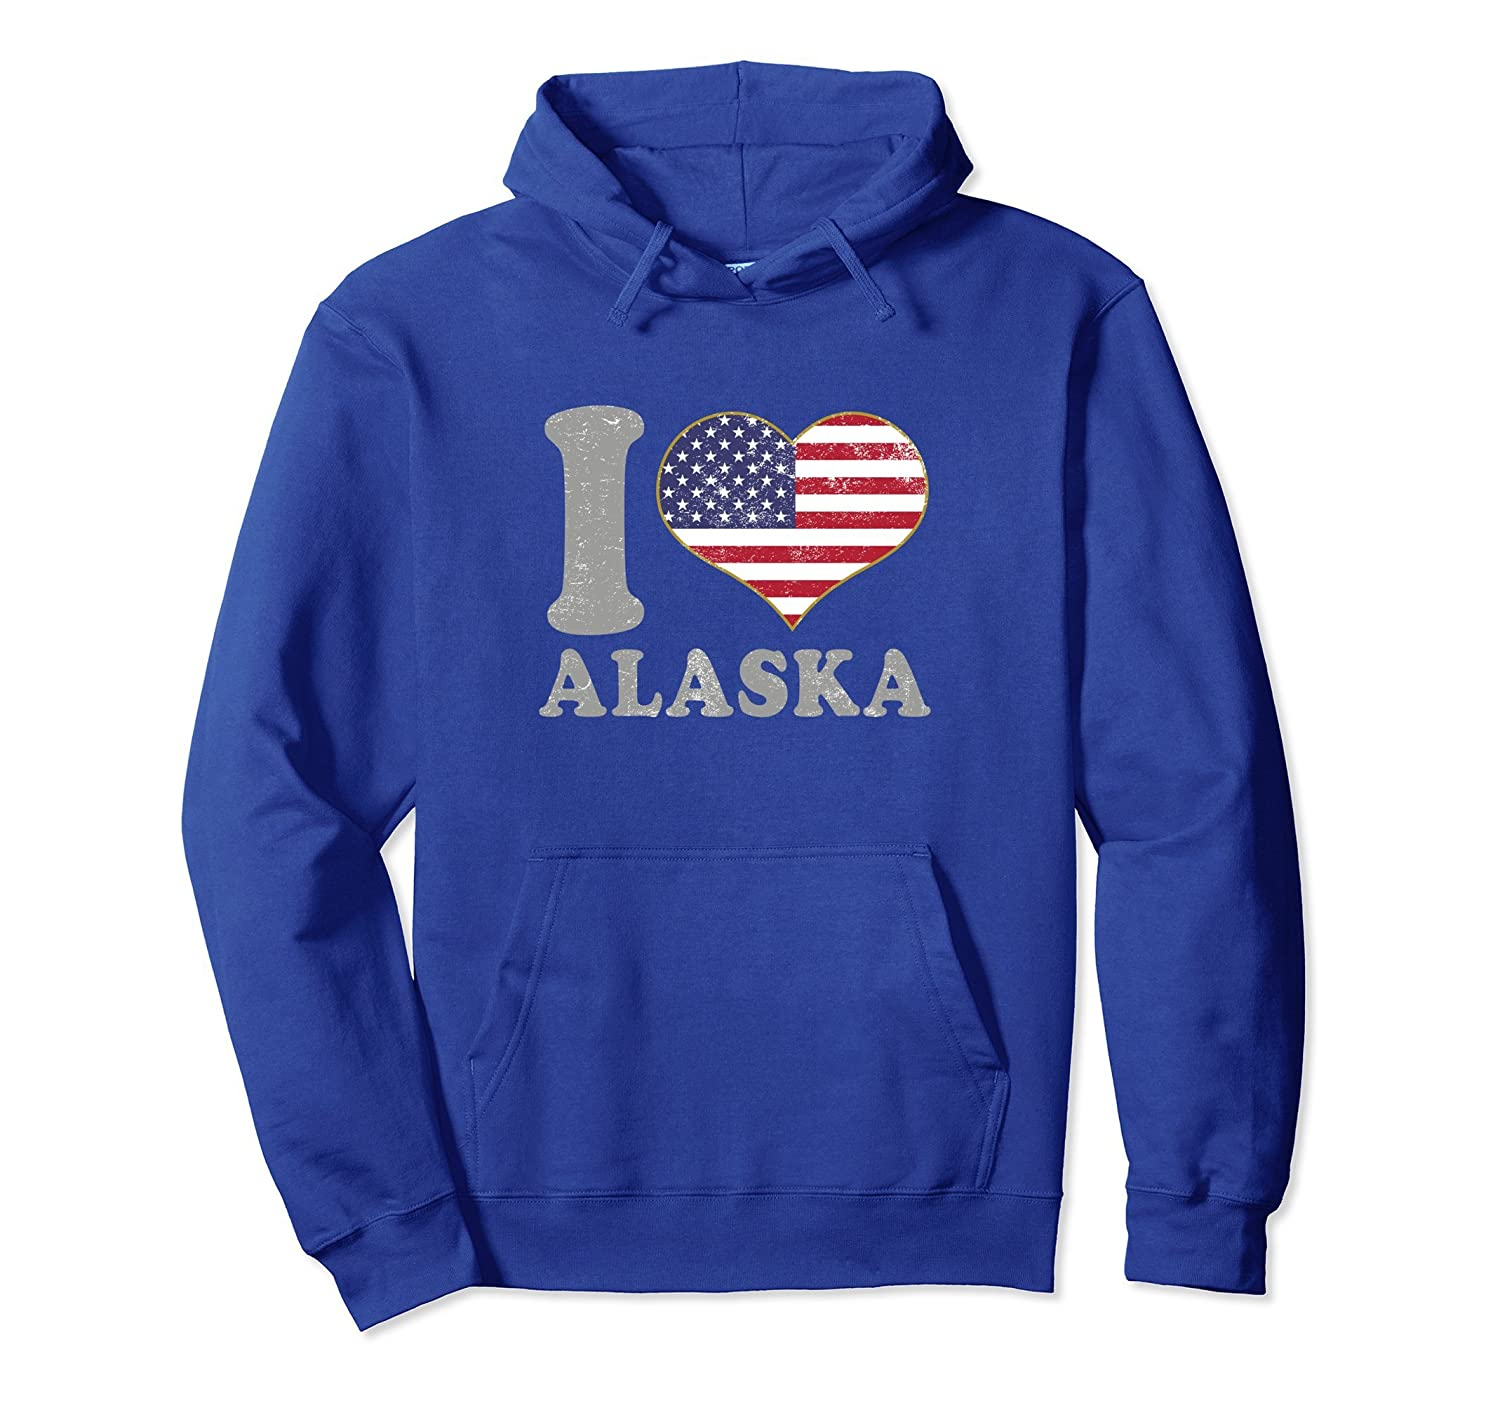 Alaska Hooded Sweatshirt Clothing State Pride Fishing Hiking-AZP